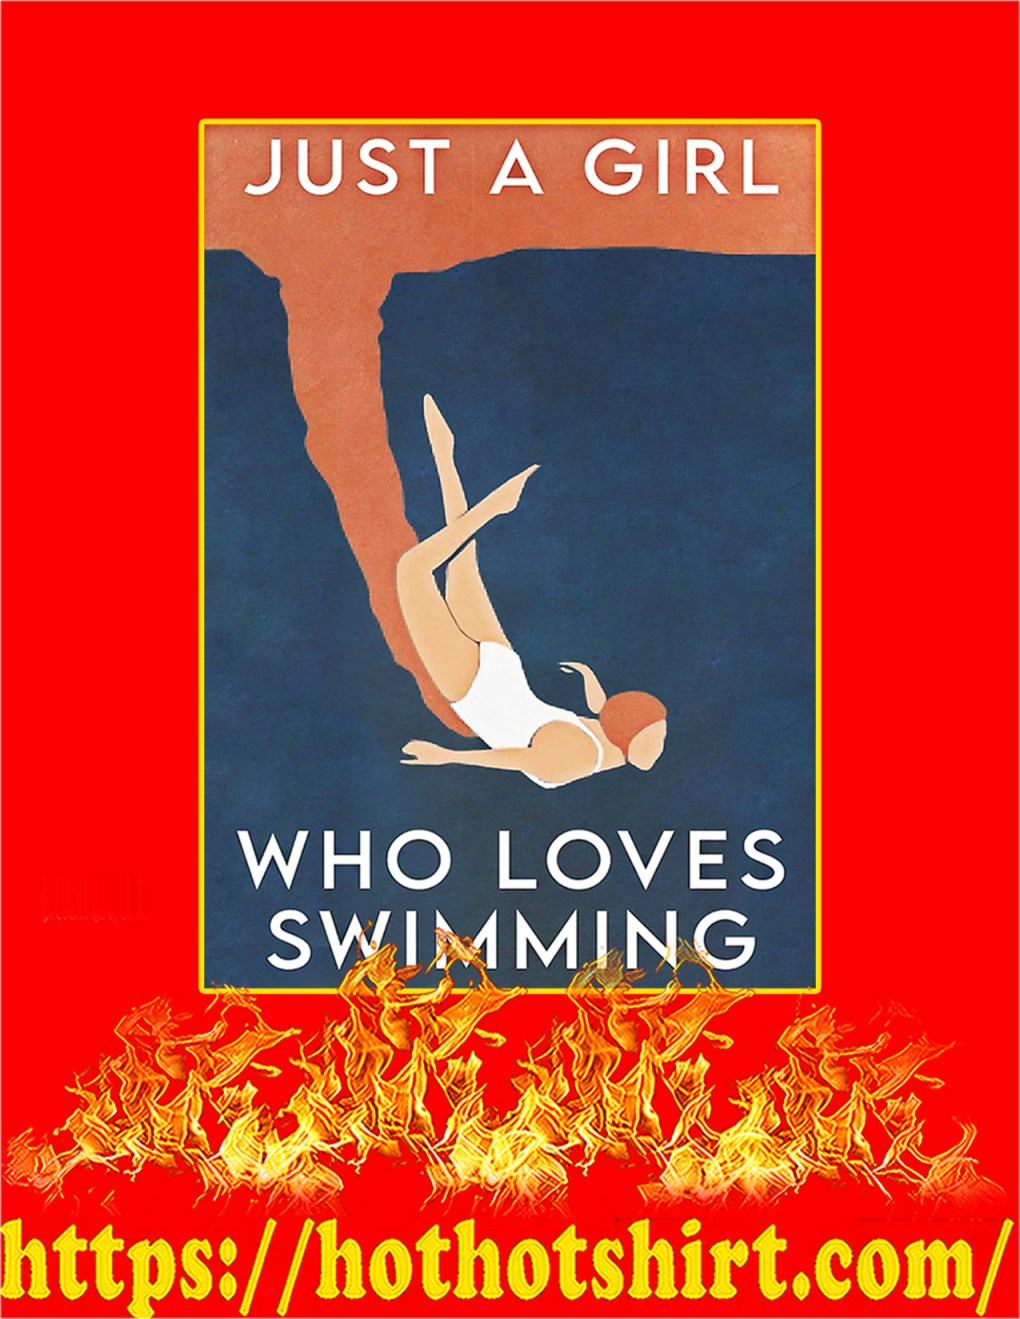 Just a girl who loves swimming poster - A2